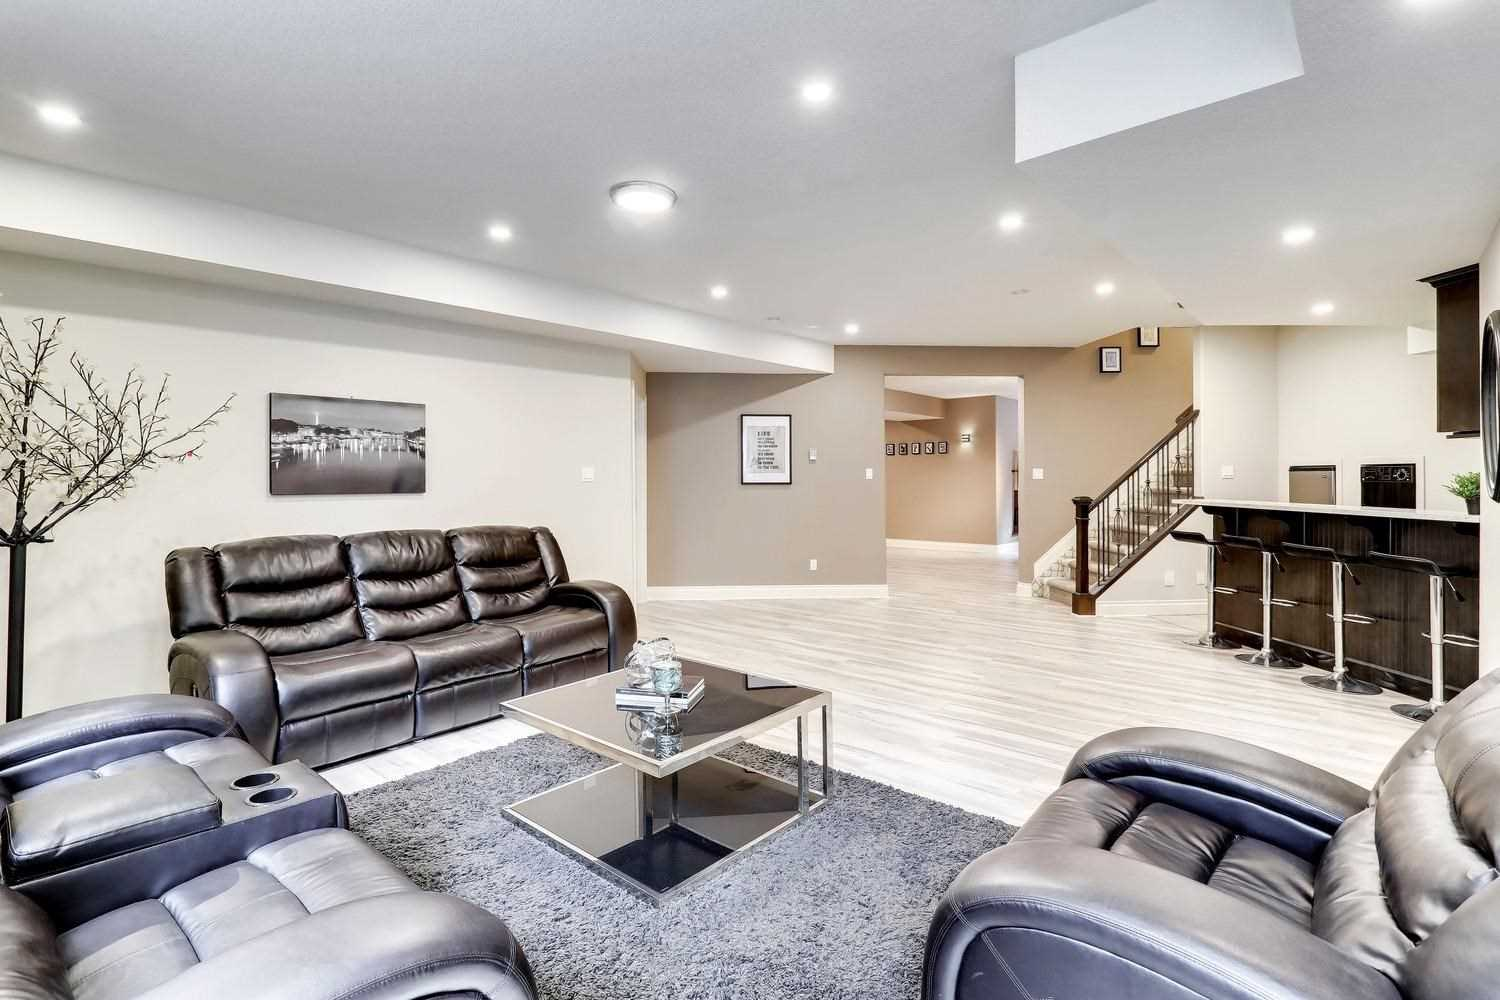 Basement with white ceiling and walls; leather couches surrounding glass and steal coffee table on three sides, on top of dark grey shag carpet; four stools in front of bar to right, wood railing stairs in background